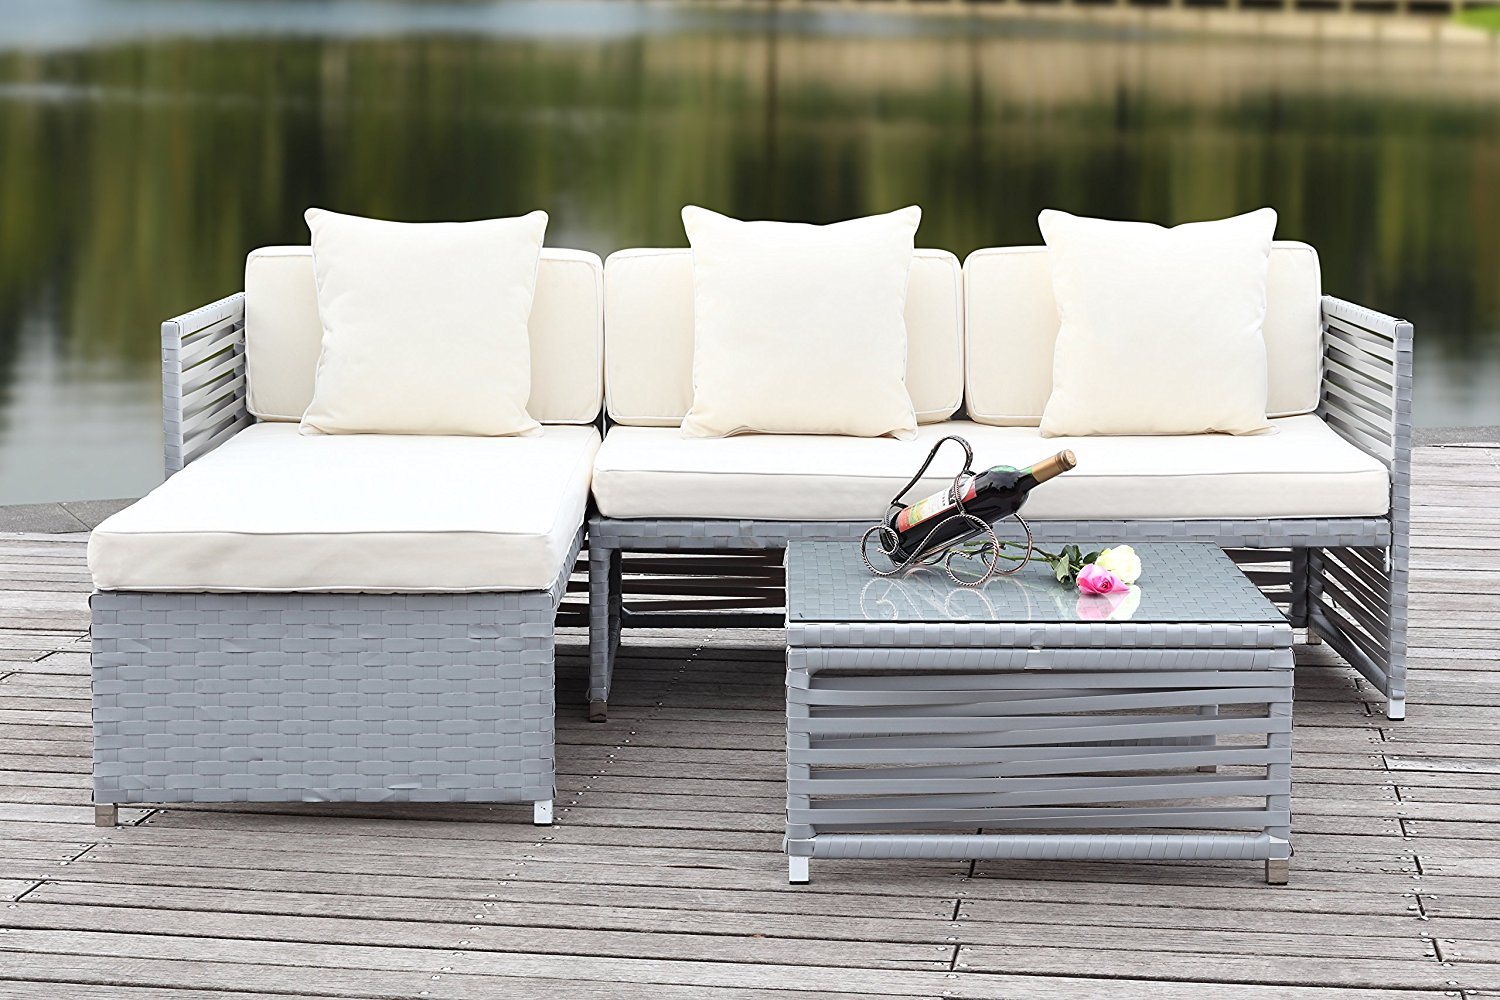 Safavieh 3 Piece Outdoor Collection Likoma Wicker Patio Set, Grey And Beige